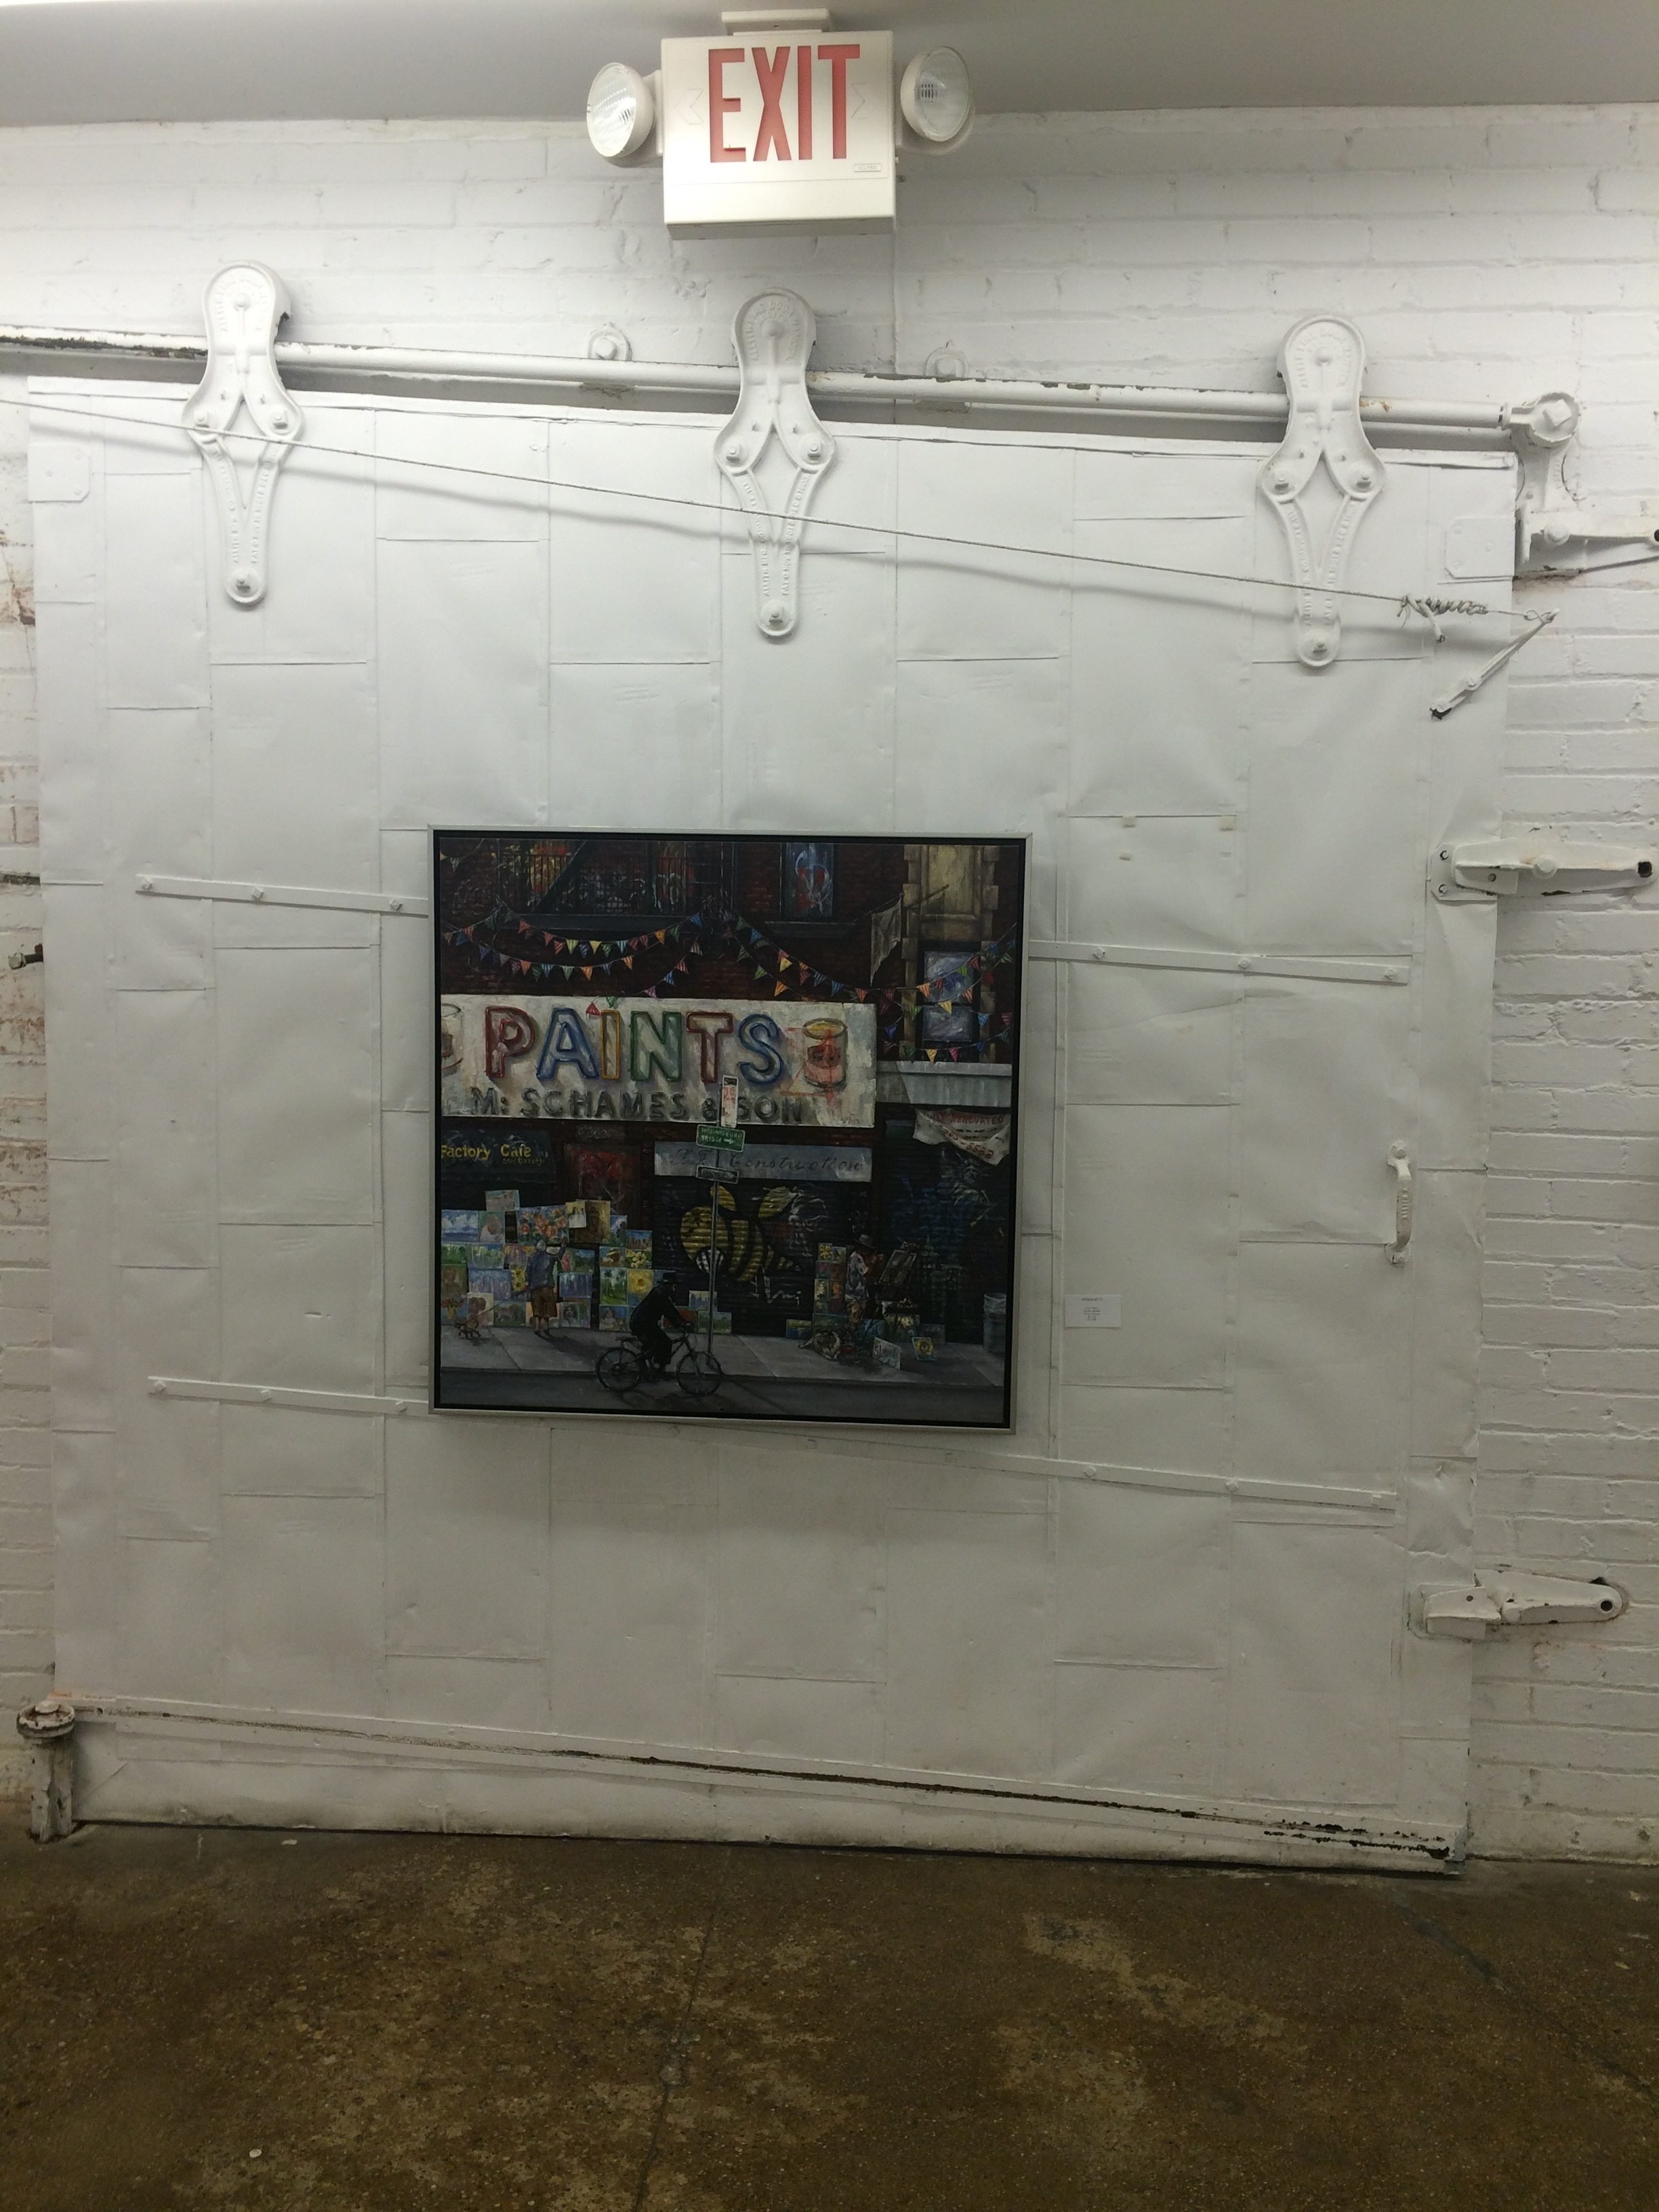 Industrial rolling doors used in the exhibit to hang a painting of a warehouse.